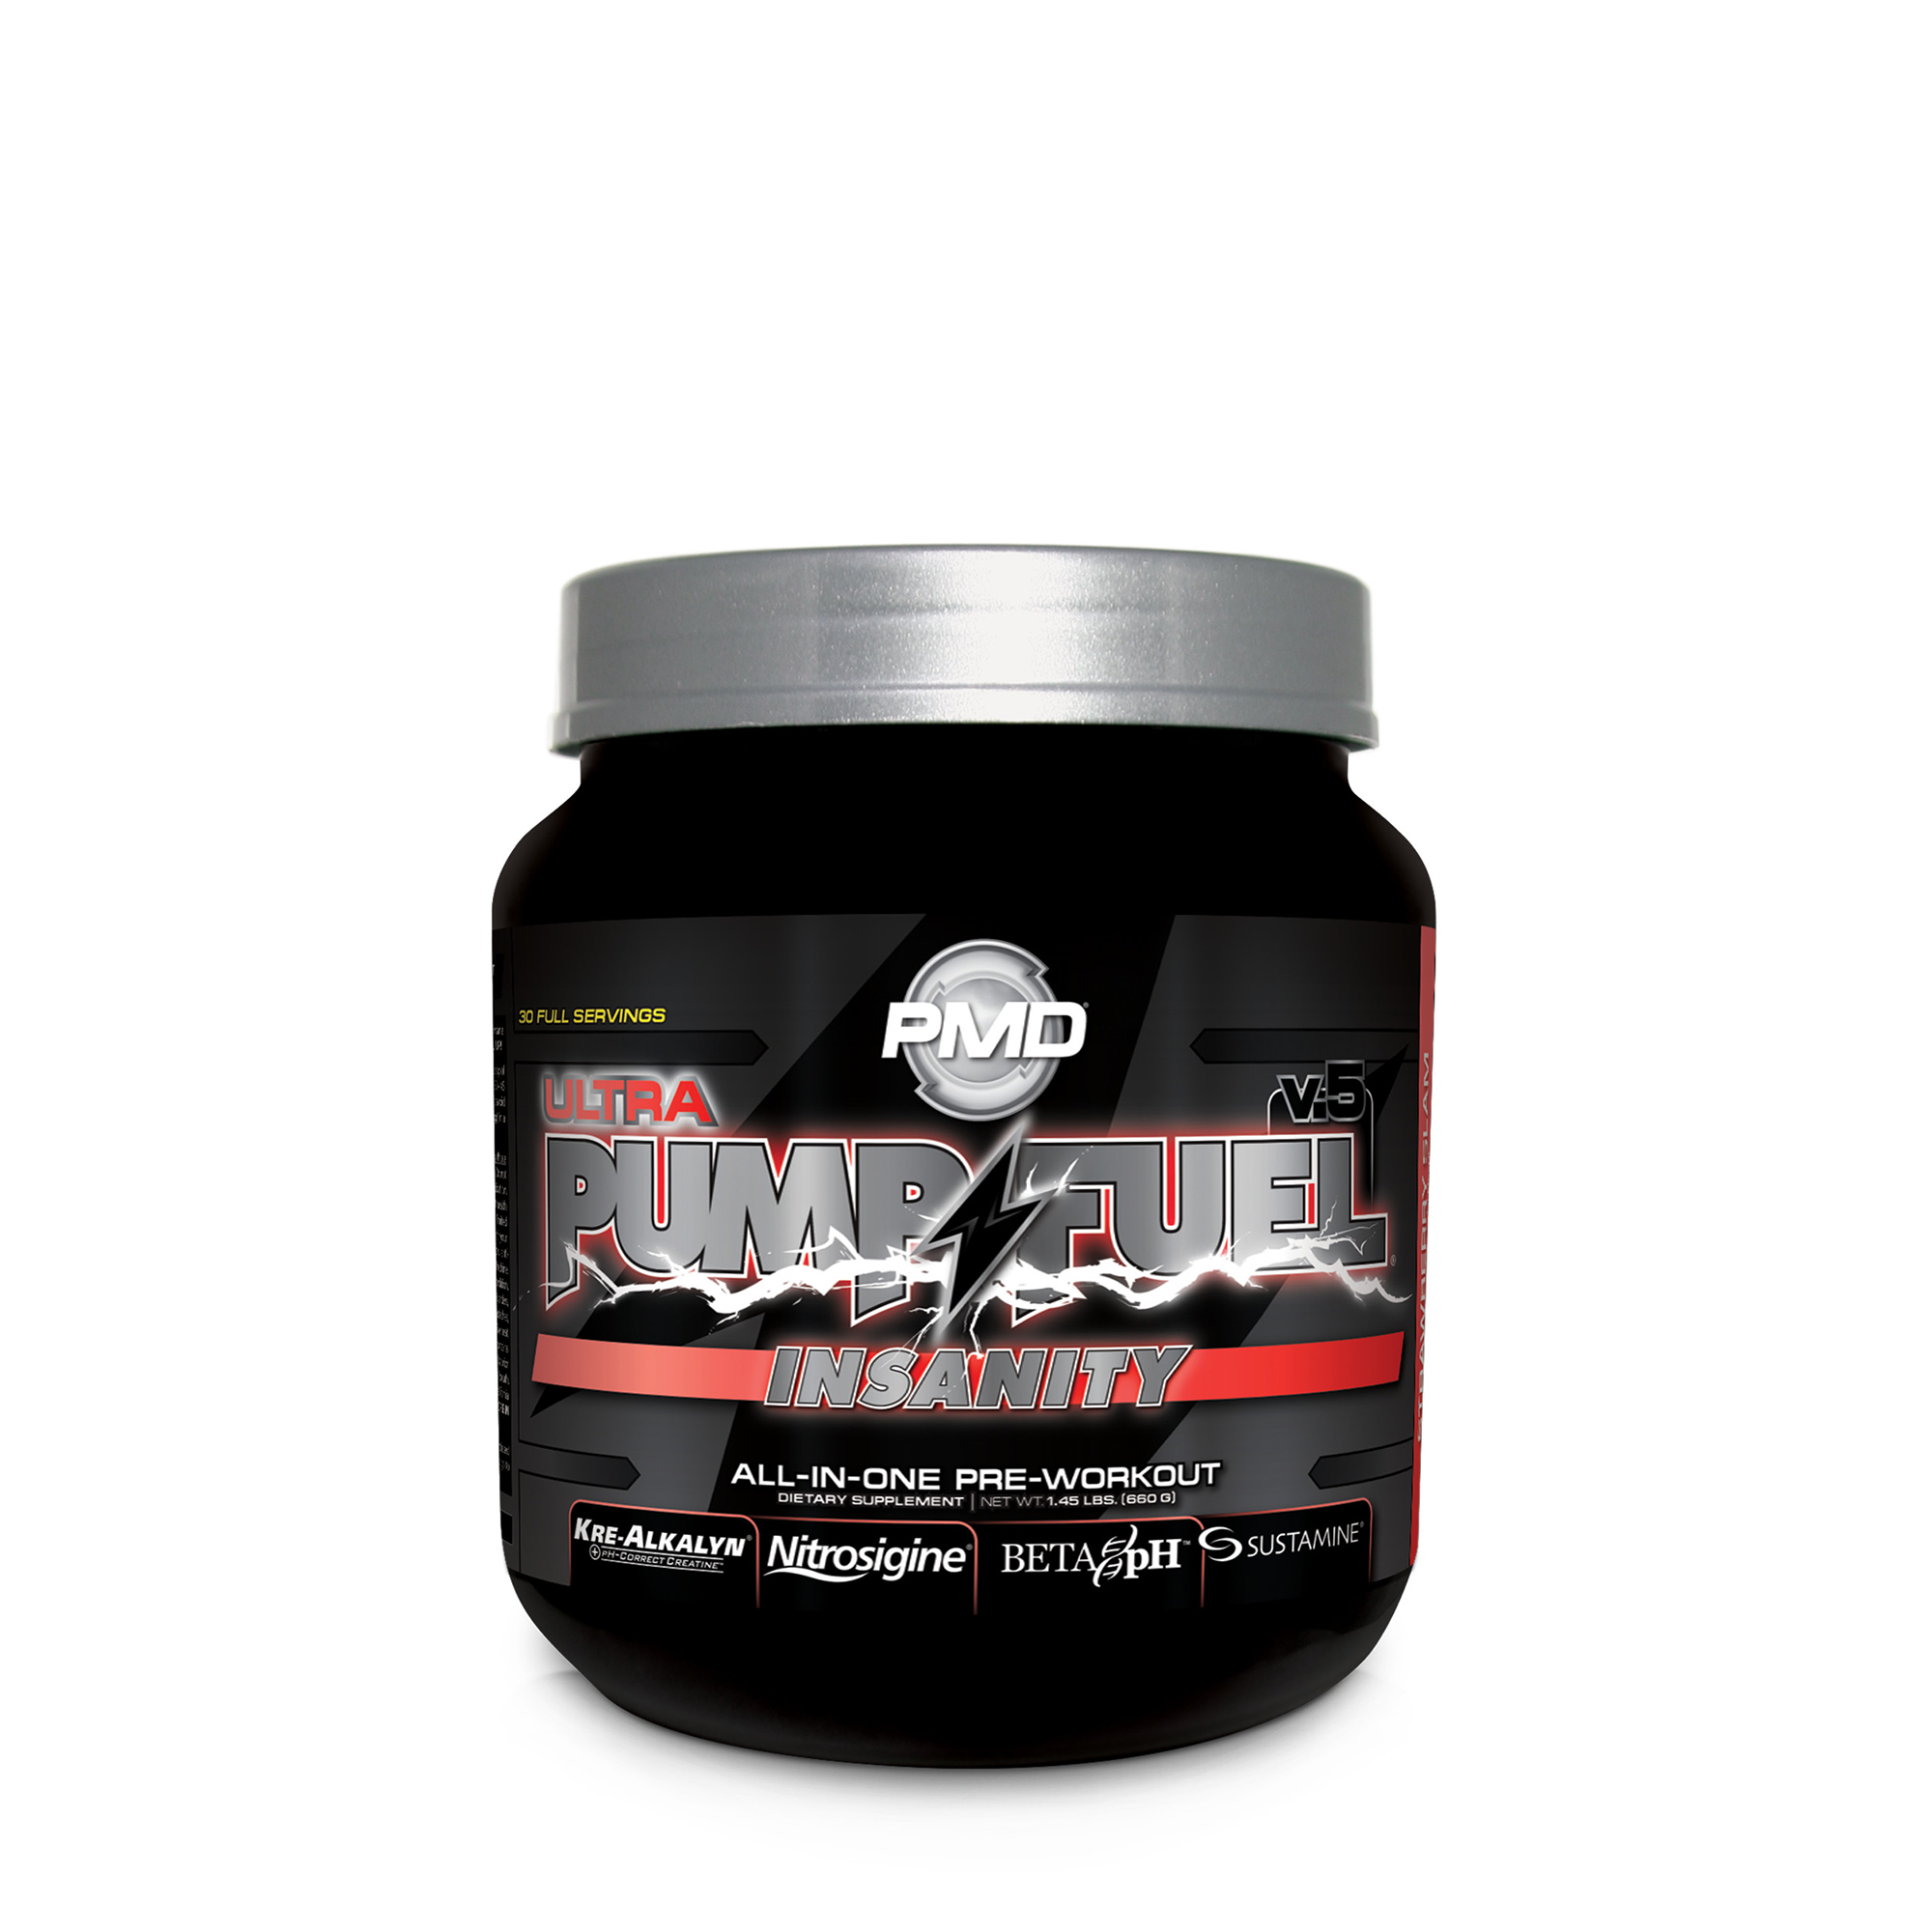 Pmd Pump Fuel Insanity Ultra Strawberry Slam Gnc